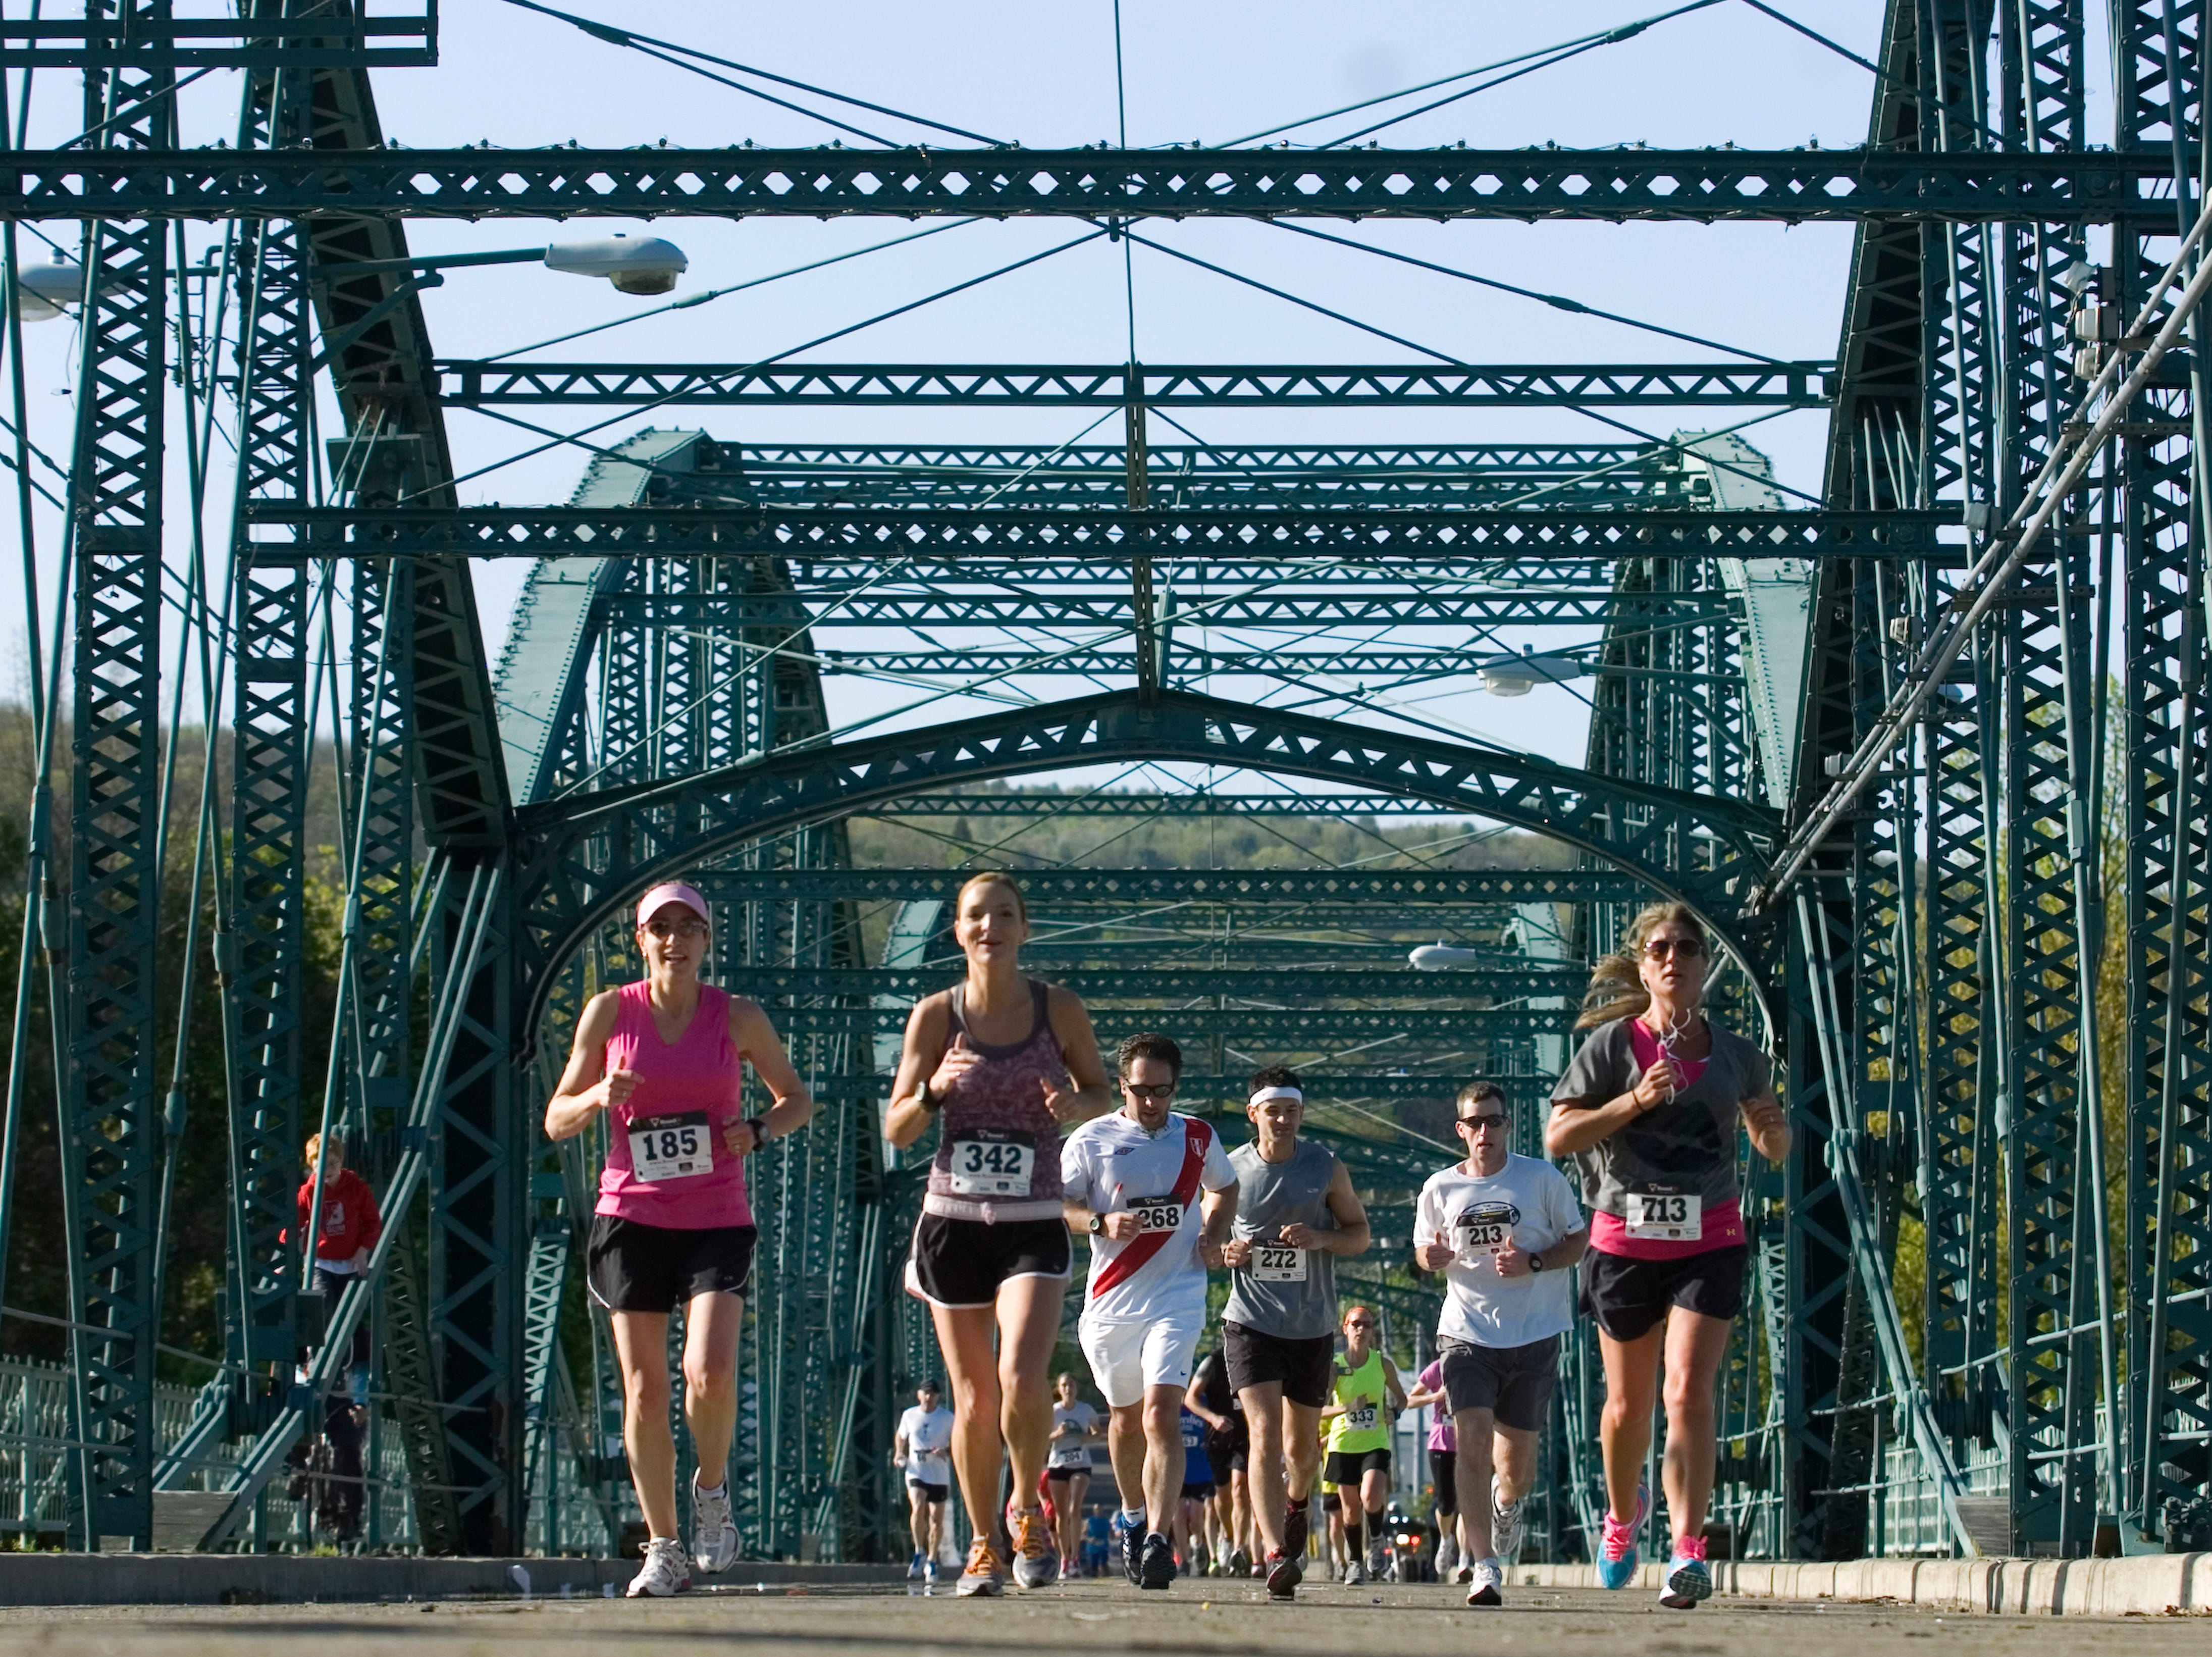 2012: Race participants make their way over the Washington St. bridge during the Greater Binghamton Chamber of Commerce Bridge Run half-marathon on Sunday morning in downtown Binghamton.